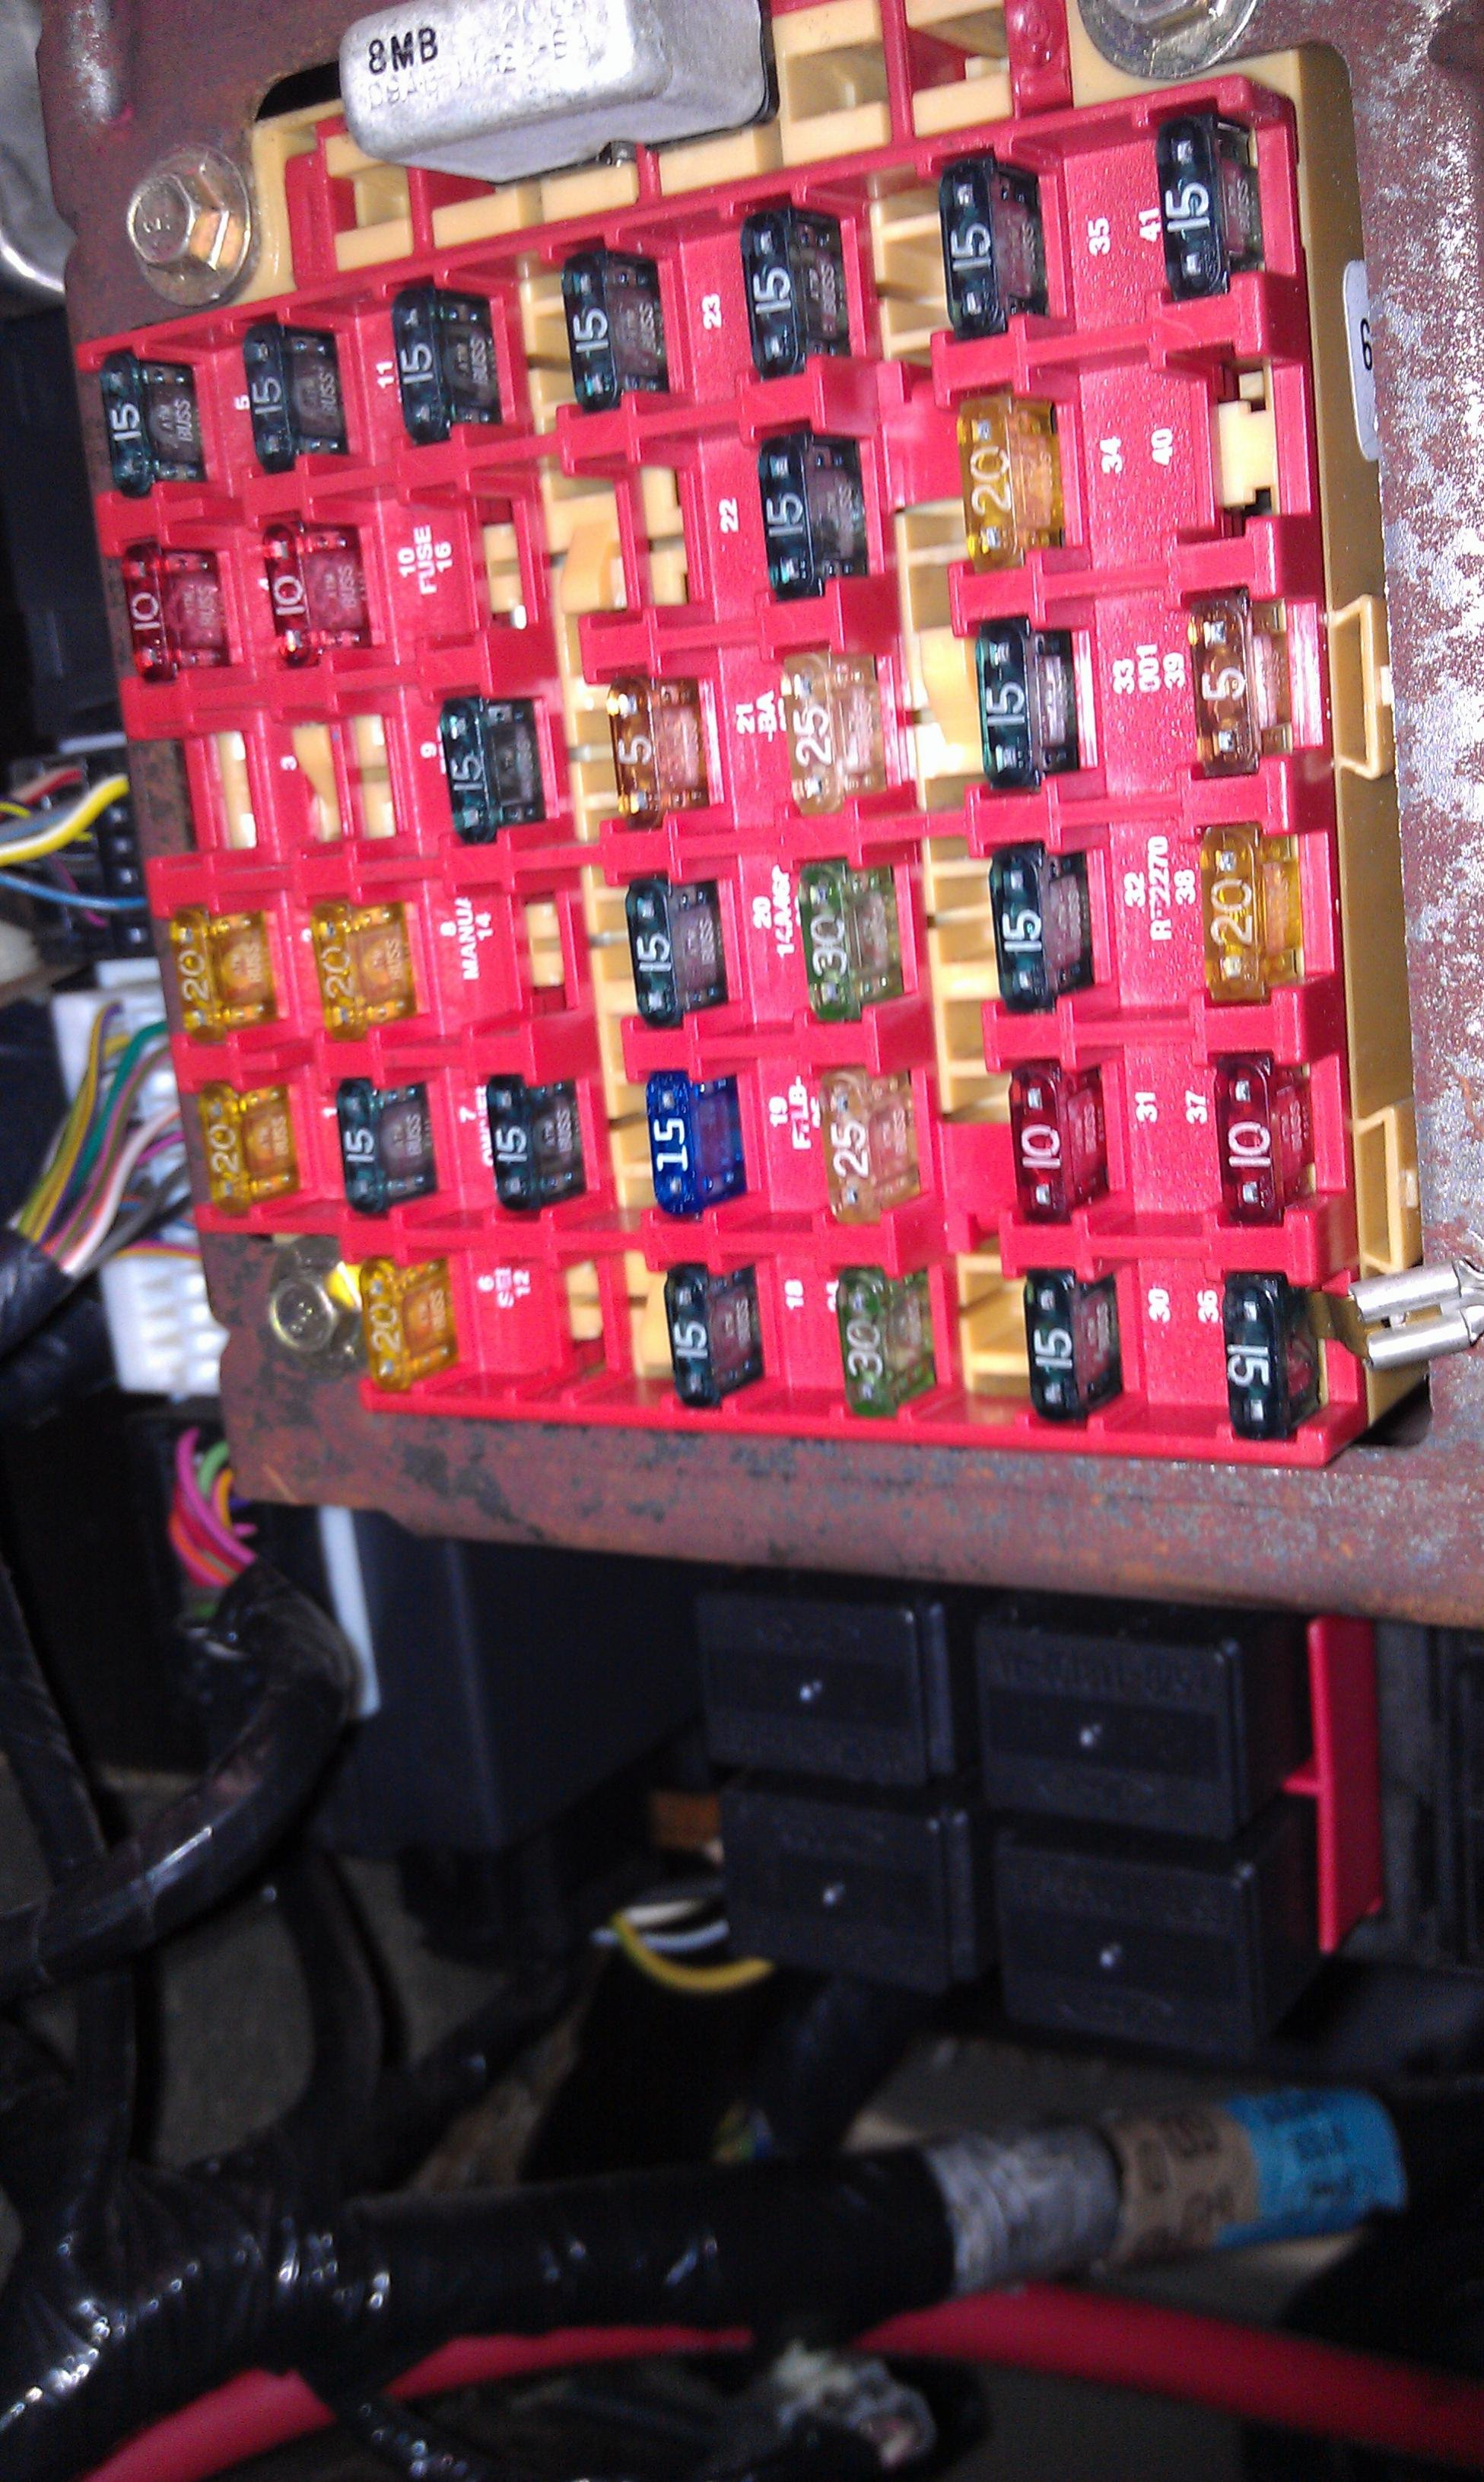 D Unidentified Relays Near Fuse Box Mustang Cobra Imag on Thread Fuses And Relays